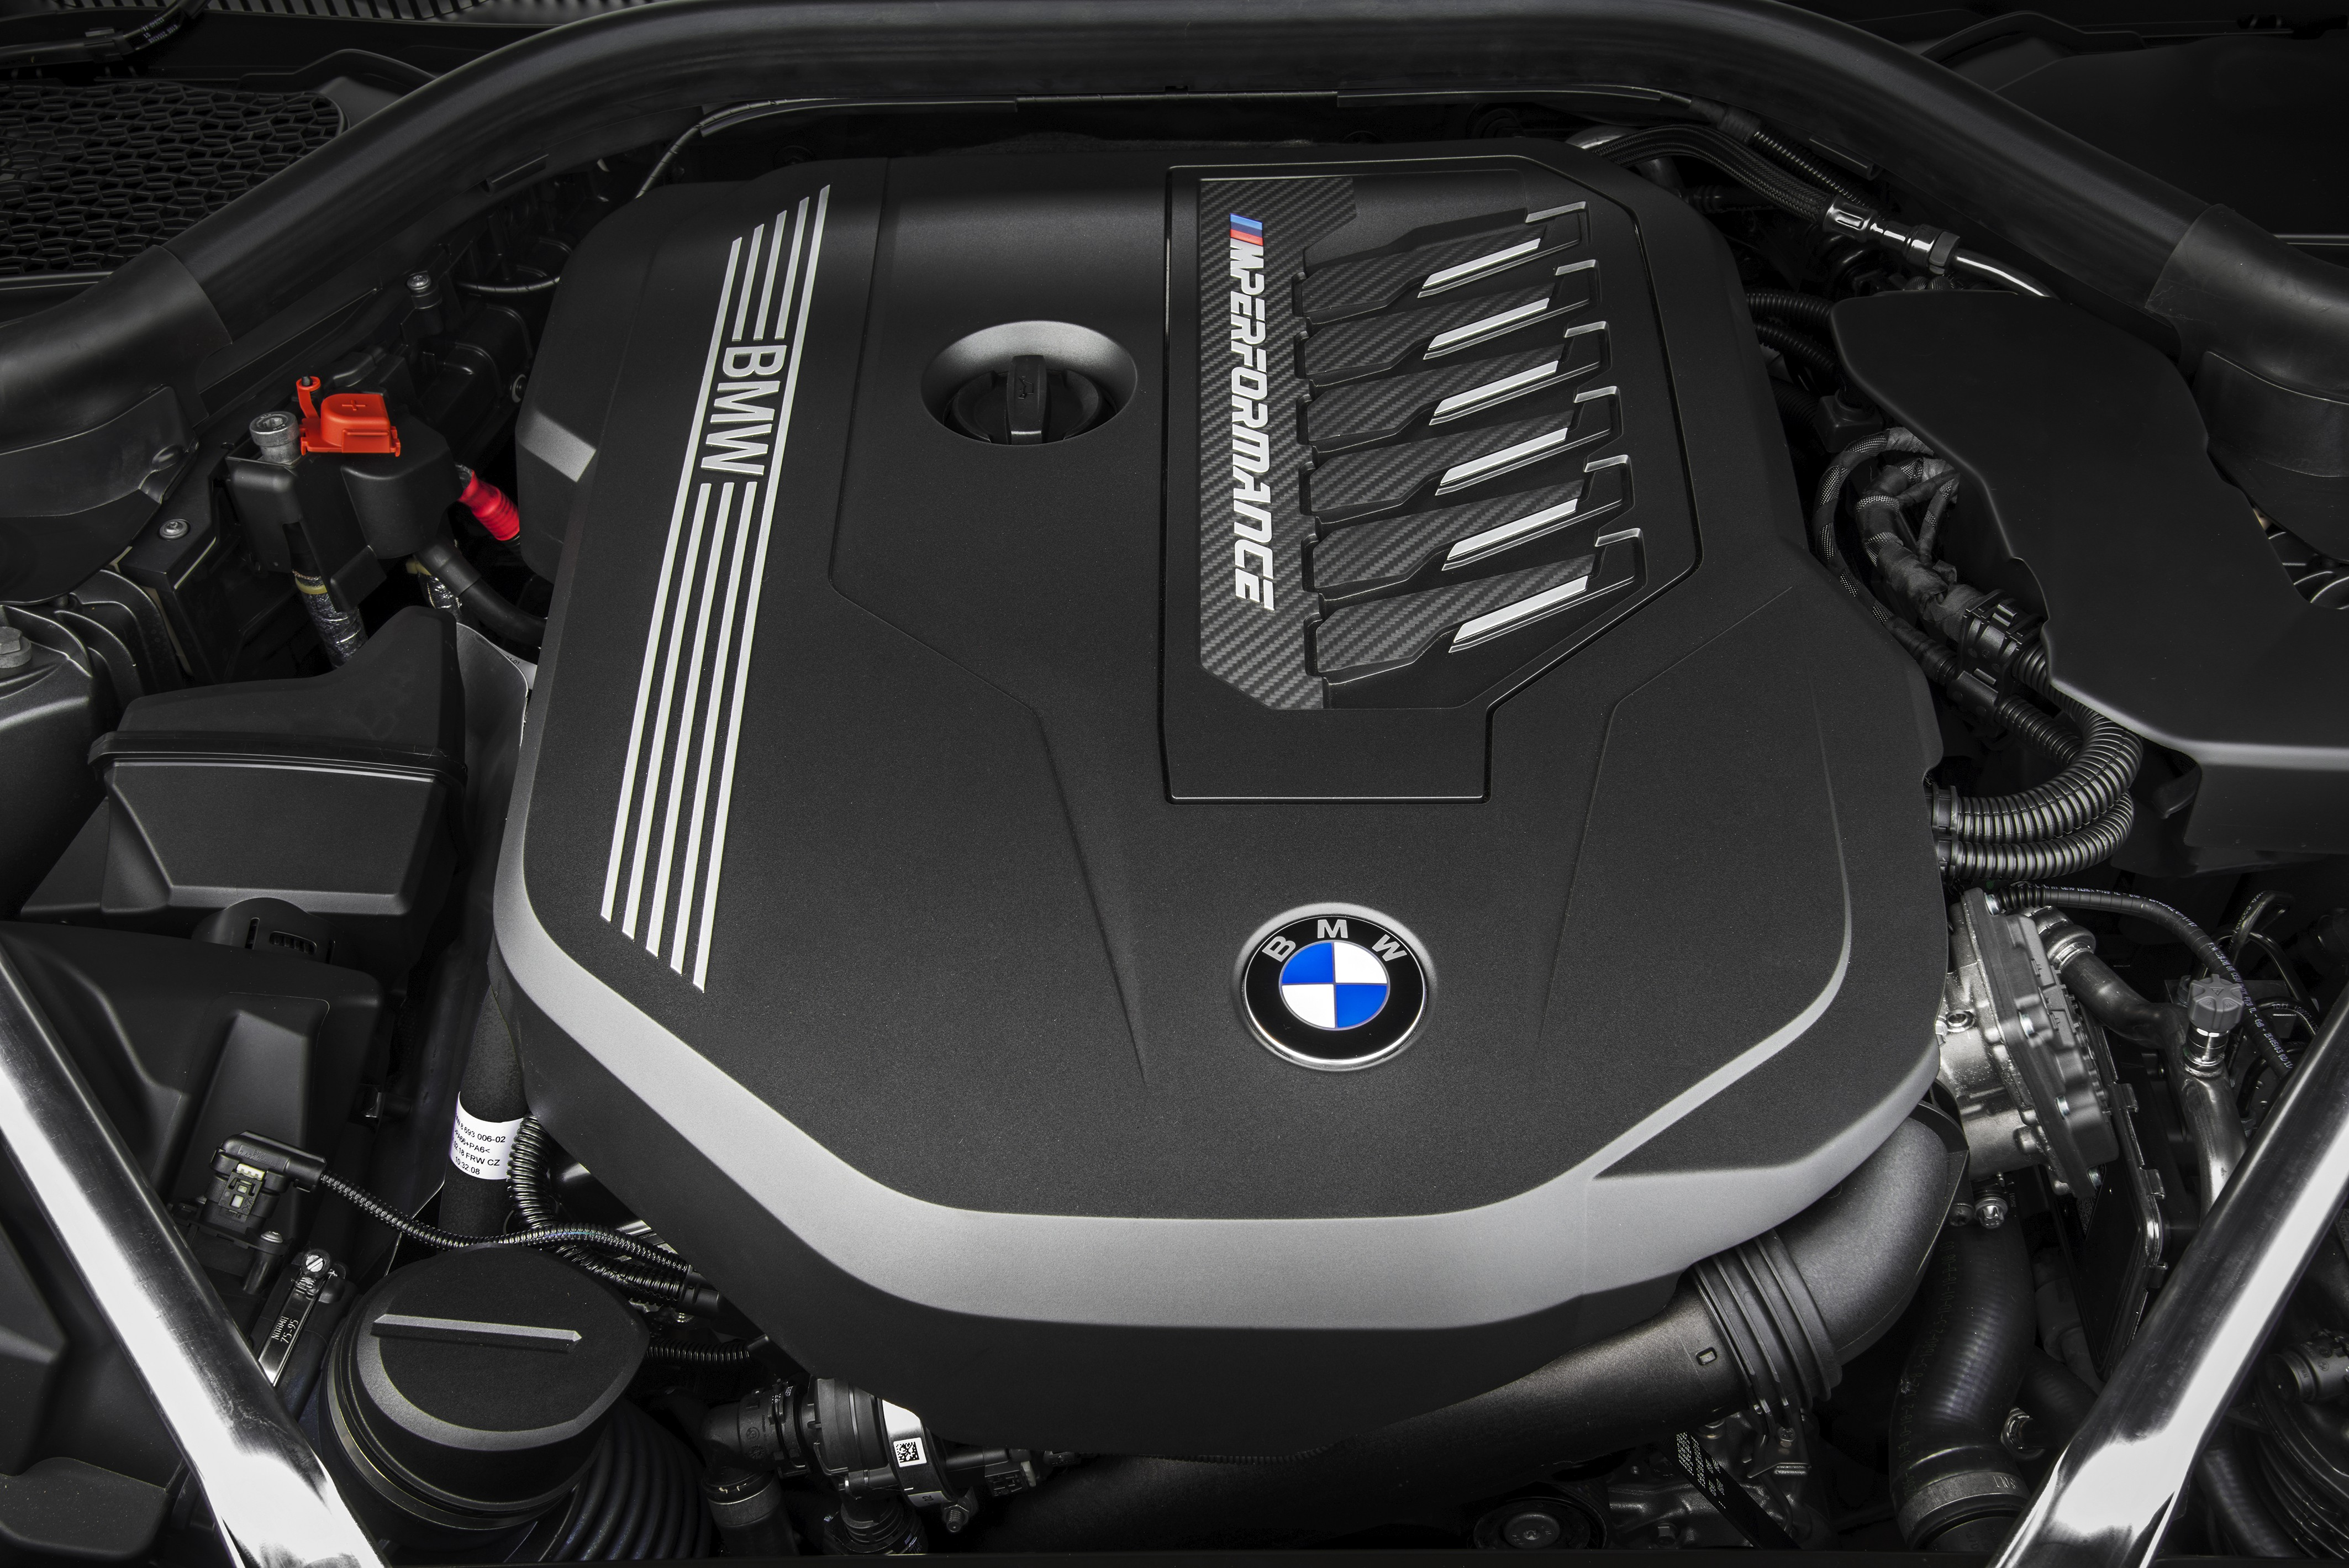 Bmw B58 Tu1 Engine Coming With Up To 388 Ps Automotivetestdrivers Smart Car Wiring Harness Diagram Further Gts M4 In Addition Spider 2020 Z4